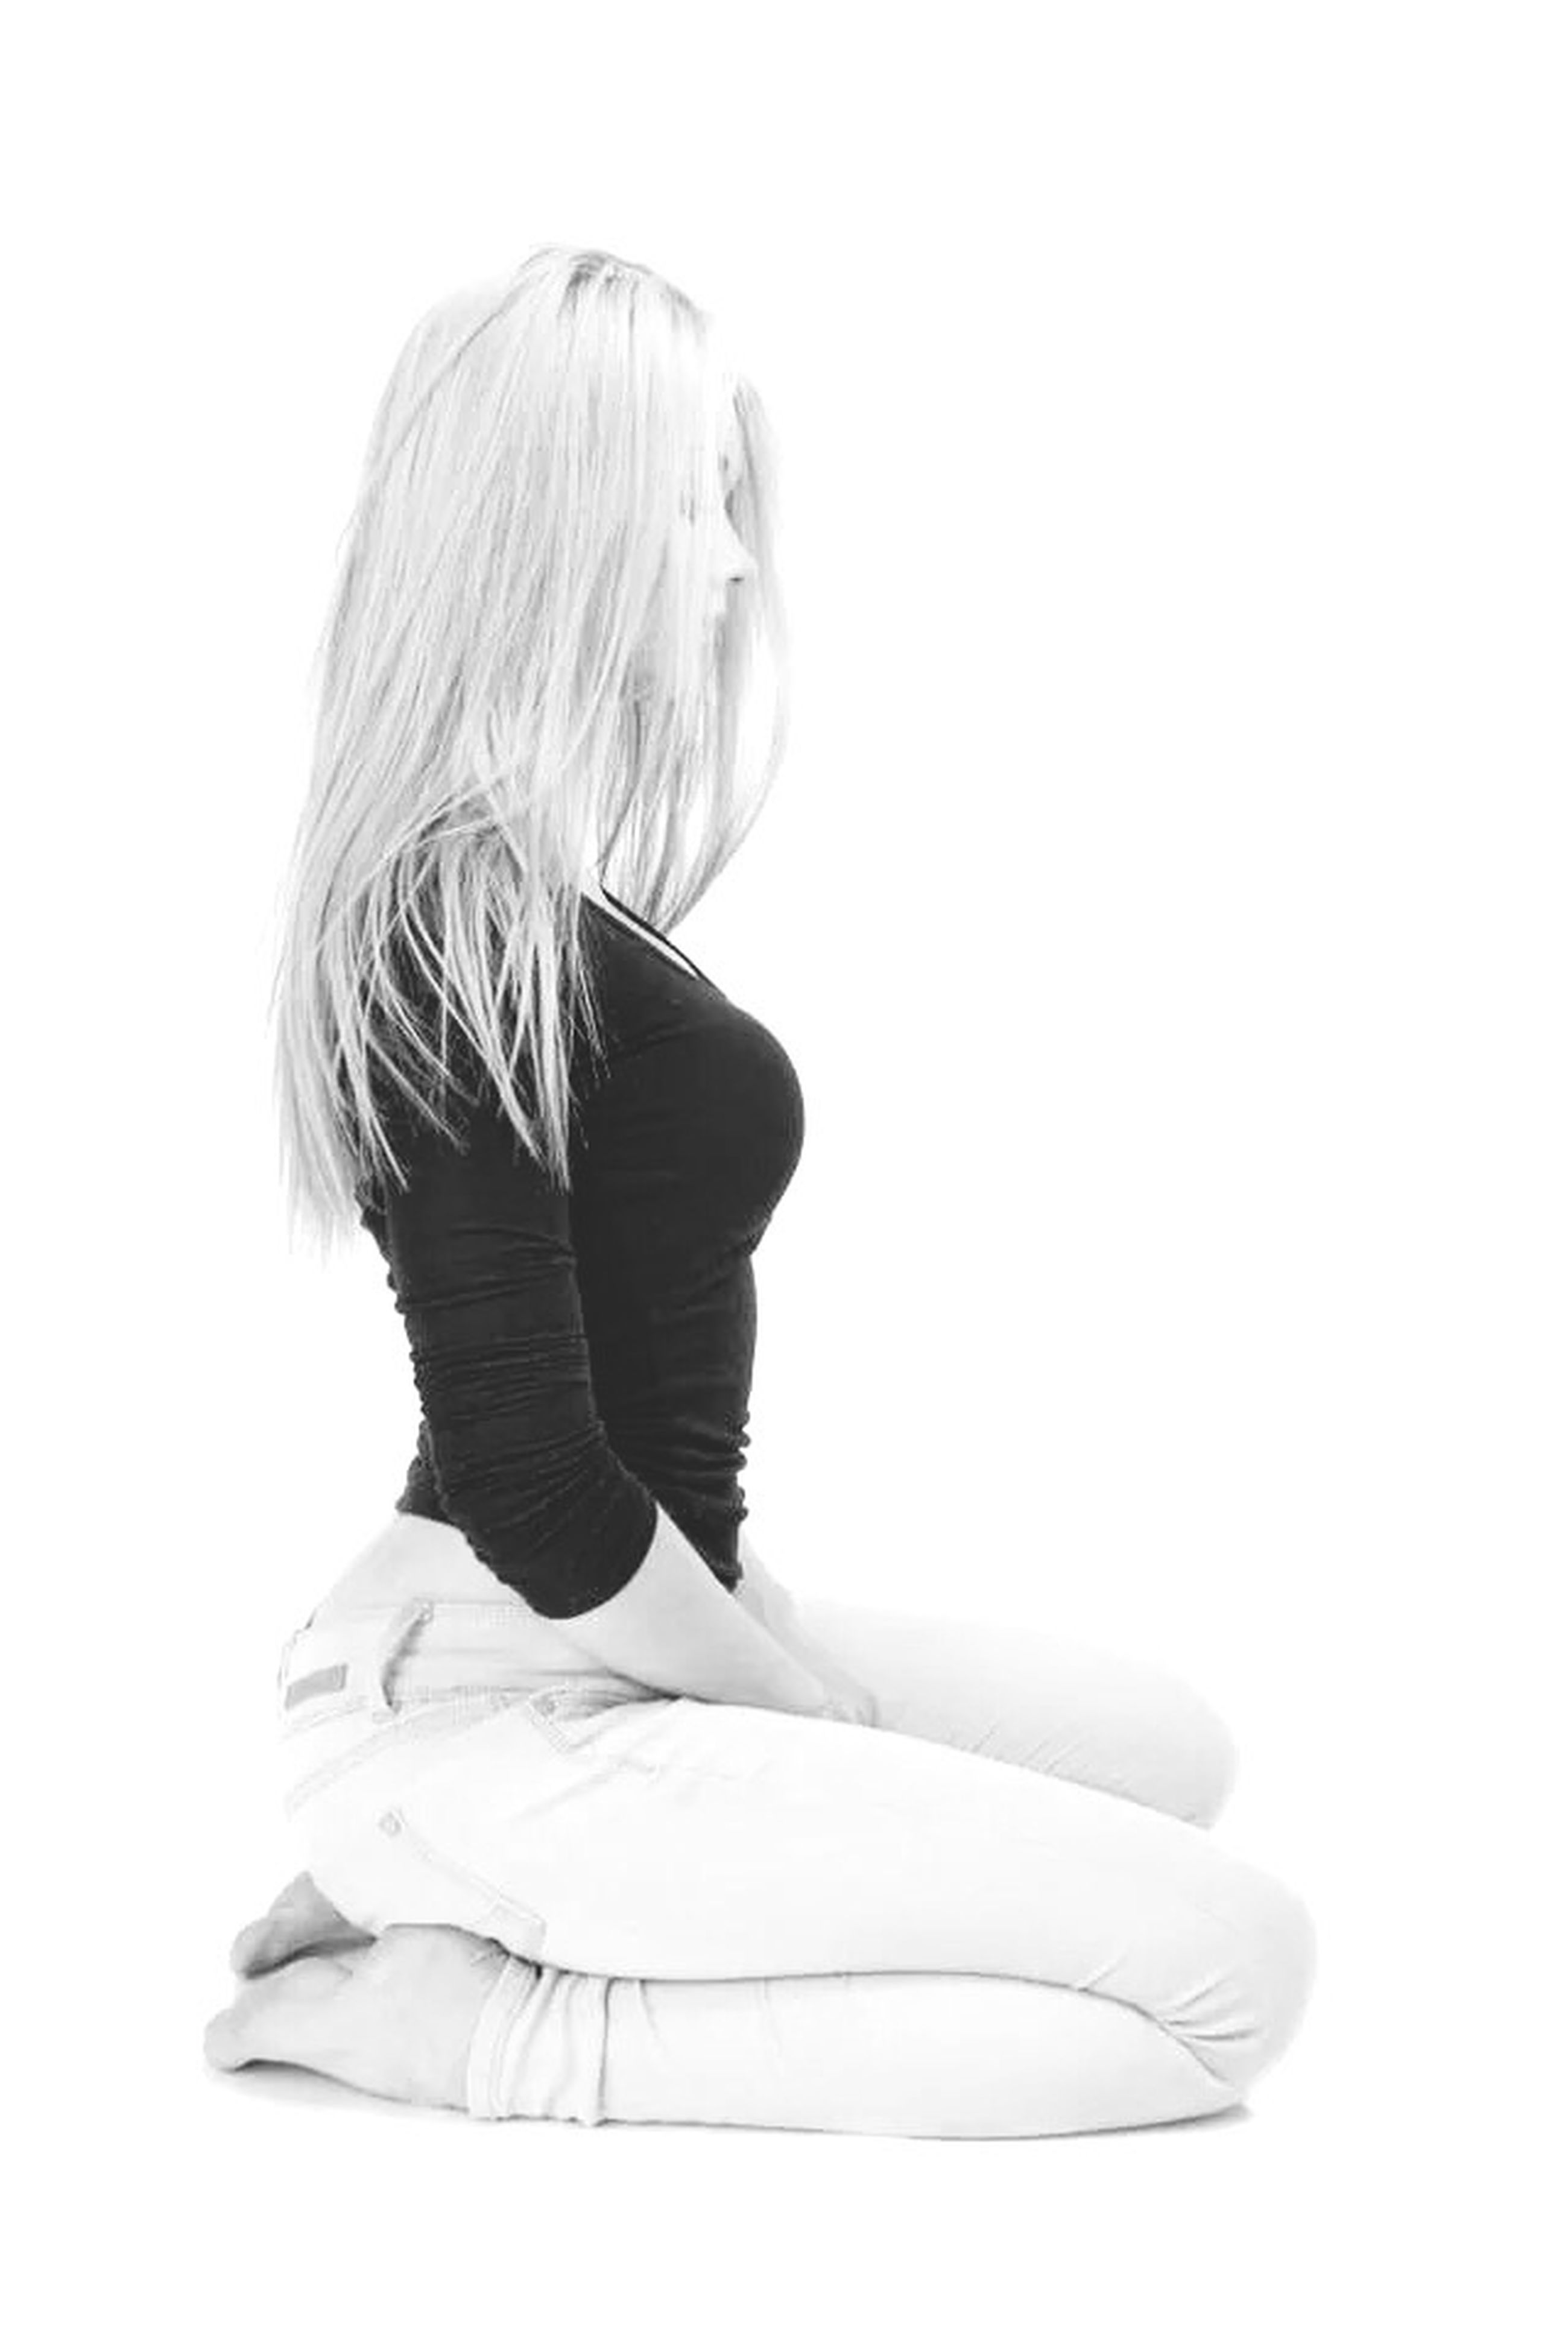 studio shot, white background, lifestyles, casual clothing, long hair, copy space, young adult, waist up, person, leisure activity, young women, three quarter length, rear view, standing, side view, front view, indoors, obscured face